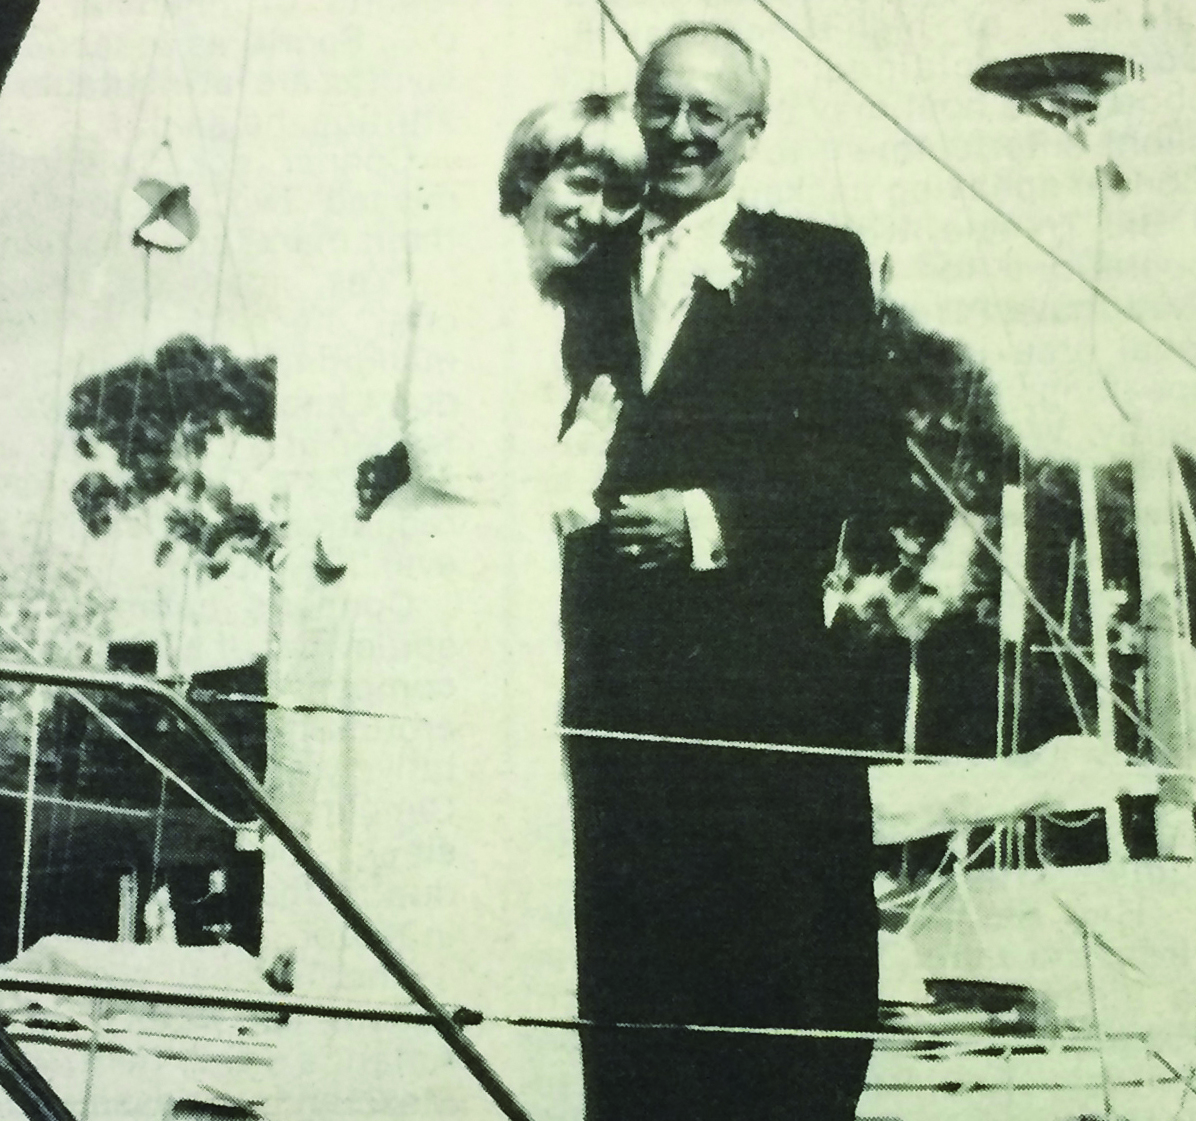 1990: Sailors set up nautical registry before wedding